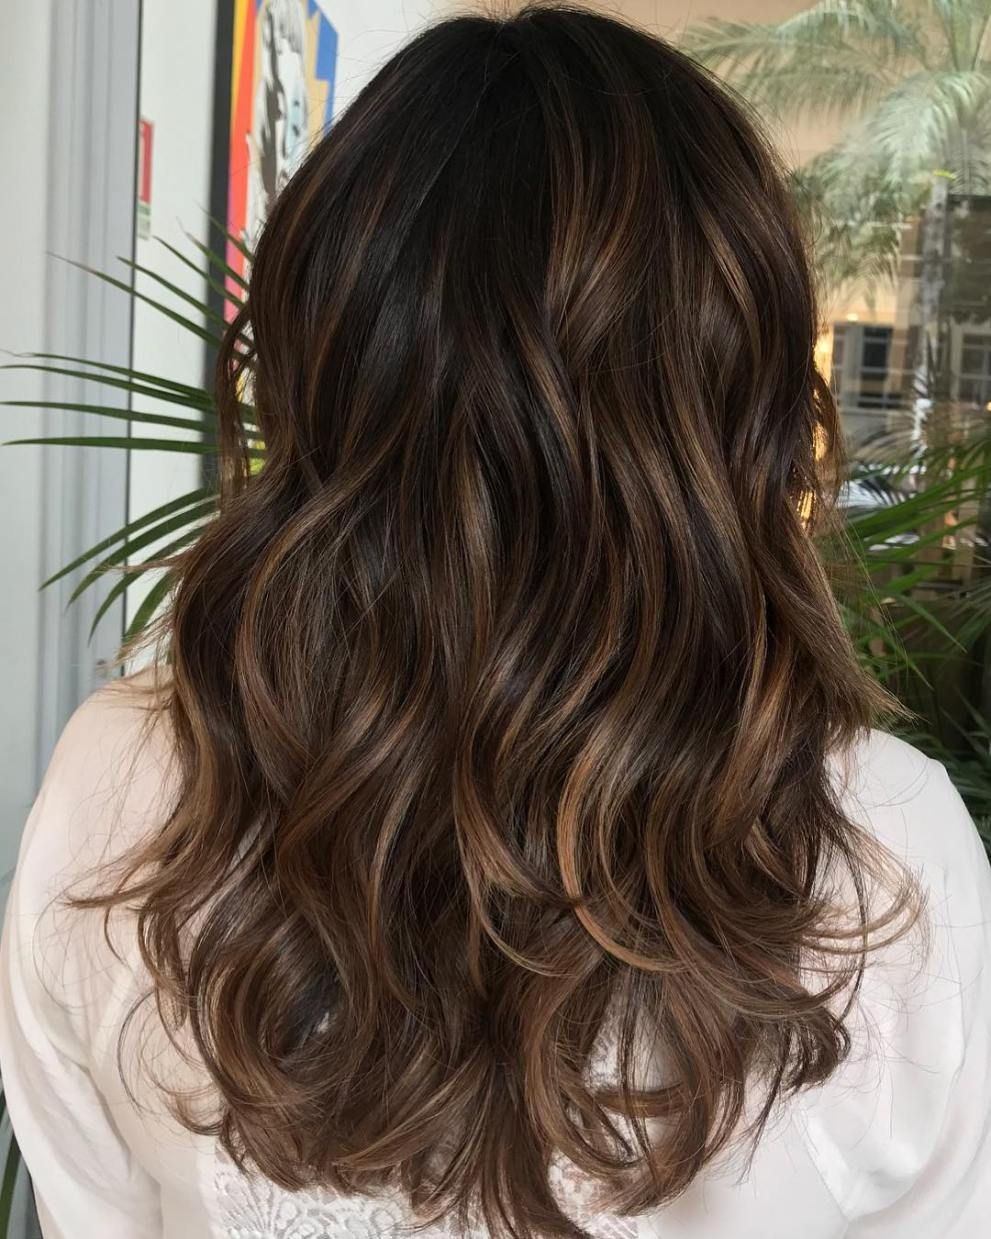 Balayaged Layers For Thick Hair Thick Hair Styles Balayage Hair Short Hair Balayage